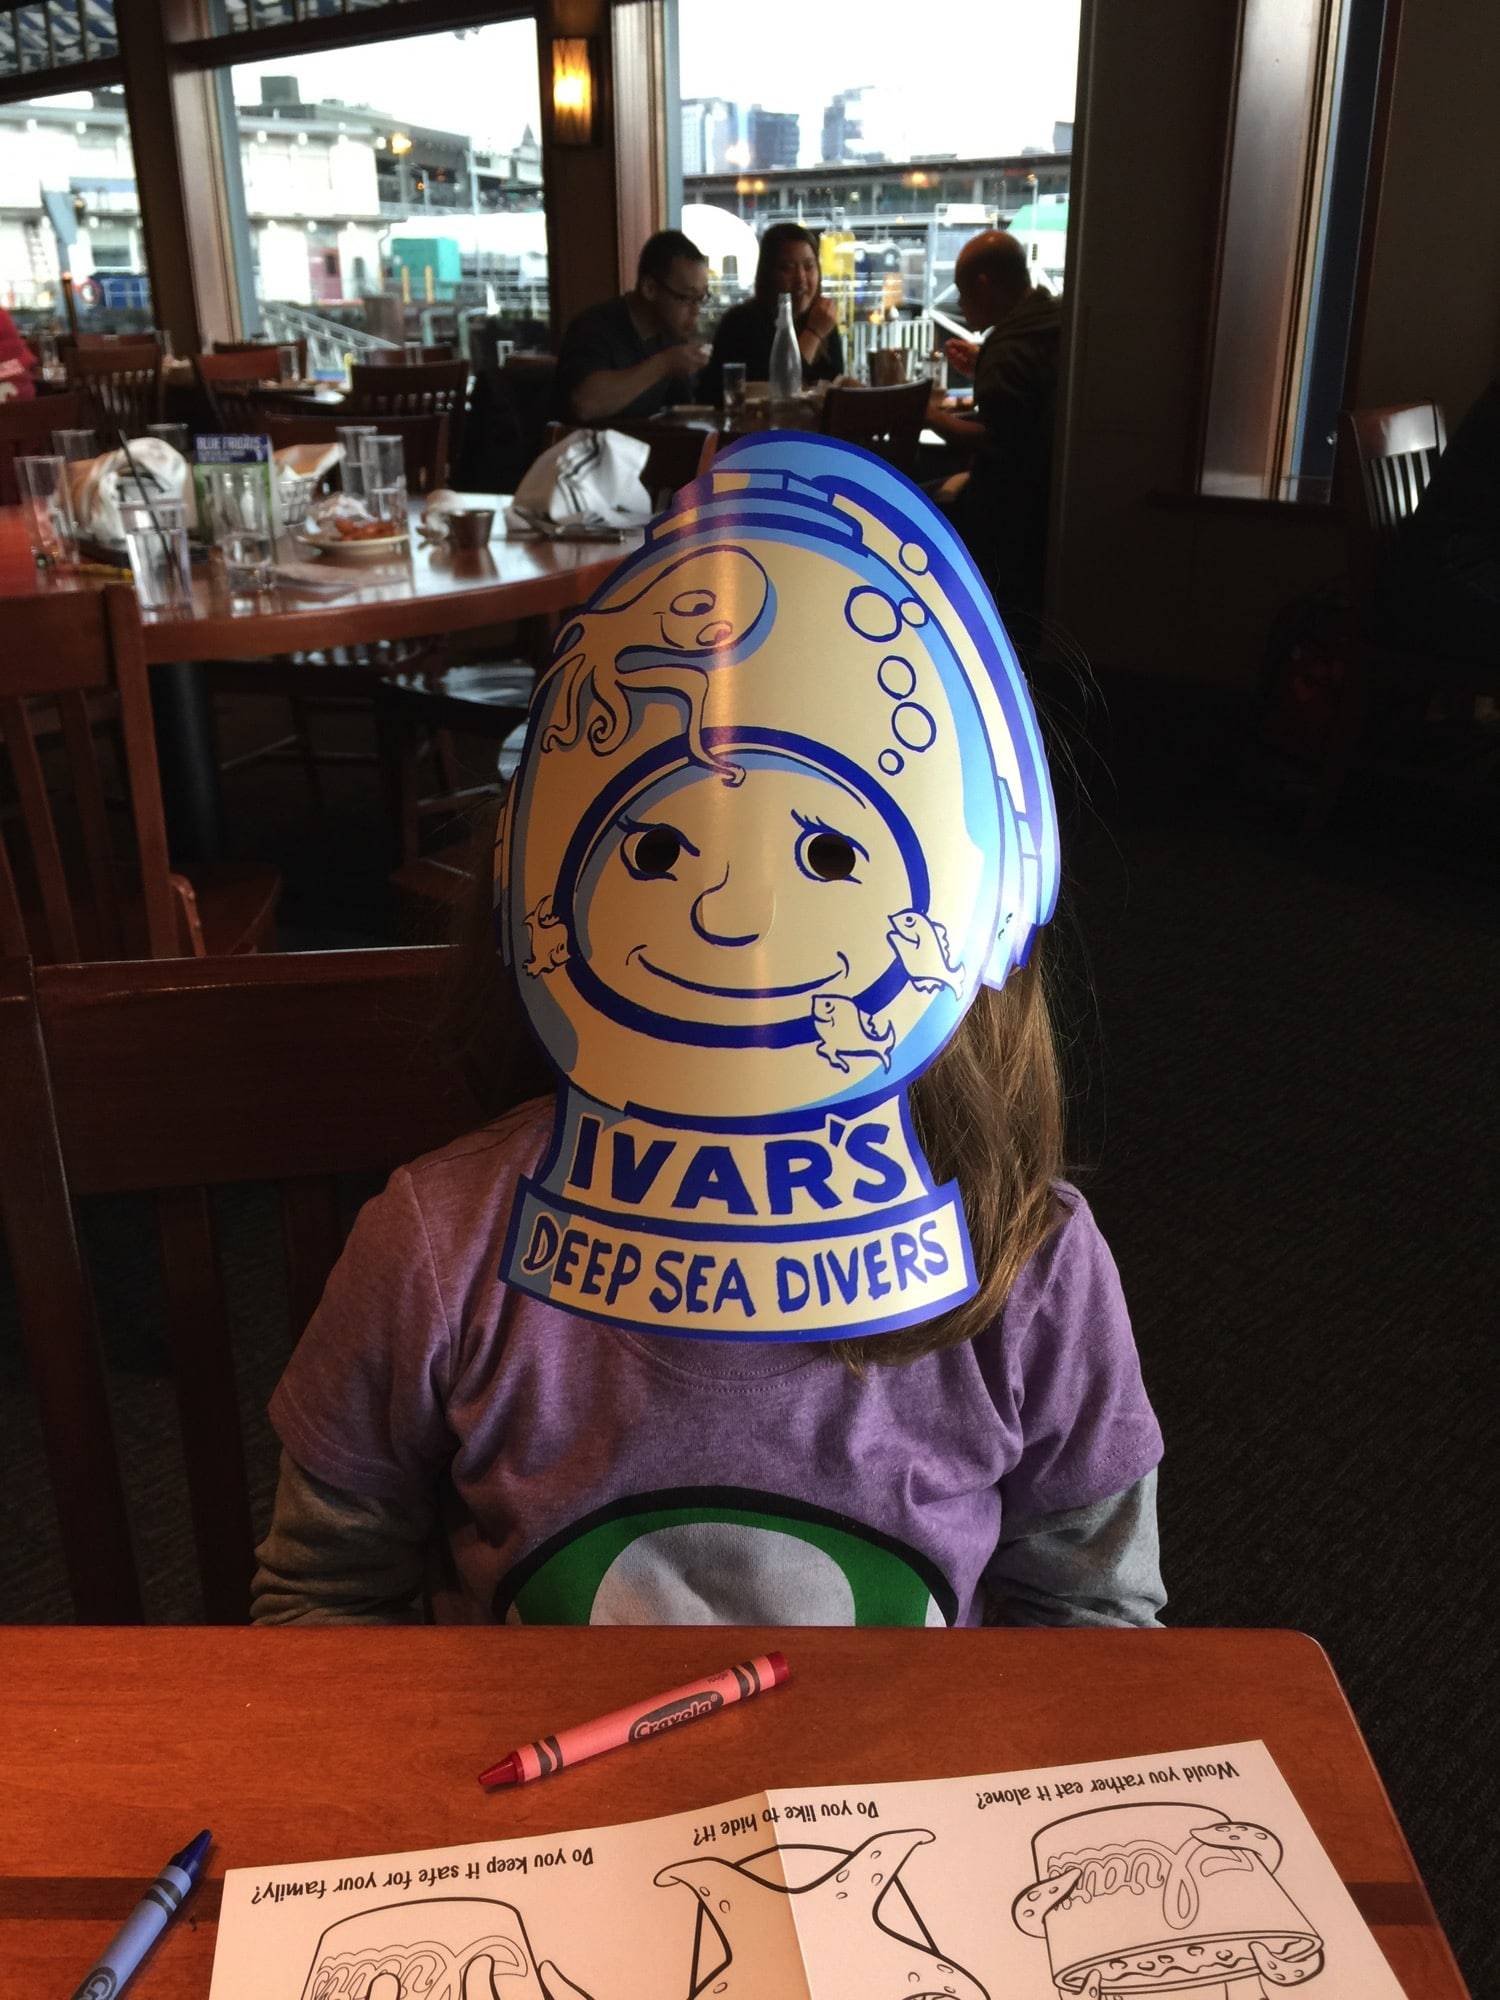 Ivar's restaurant Seattle